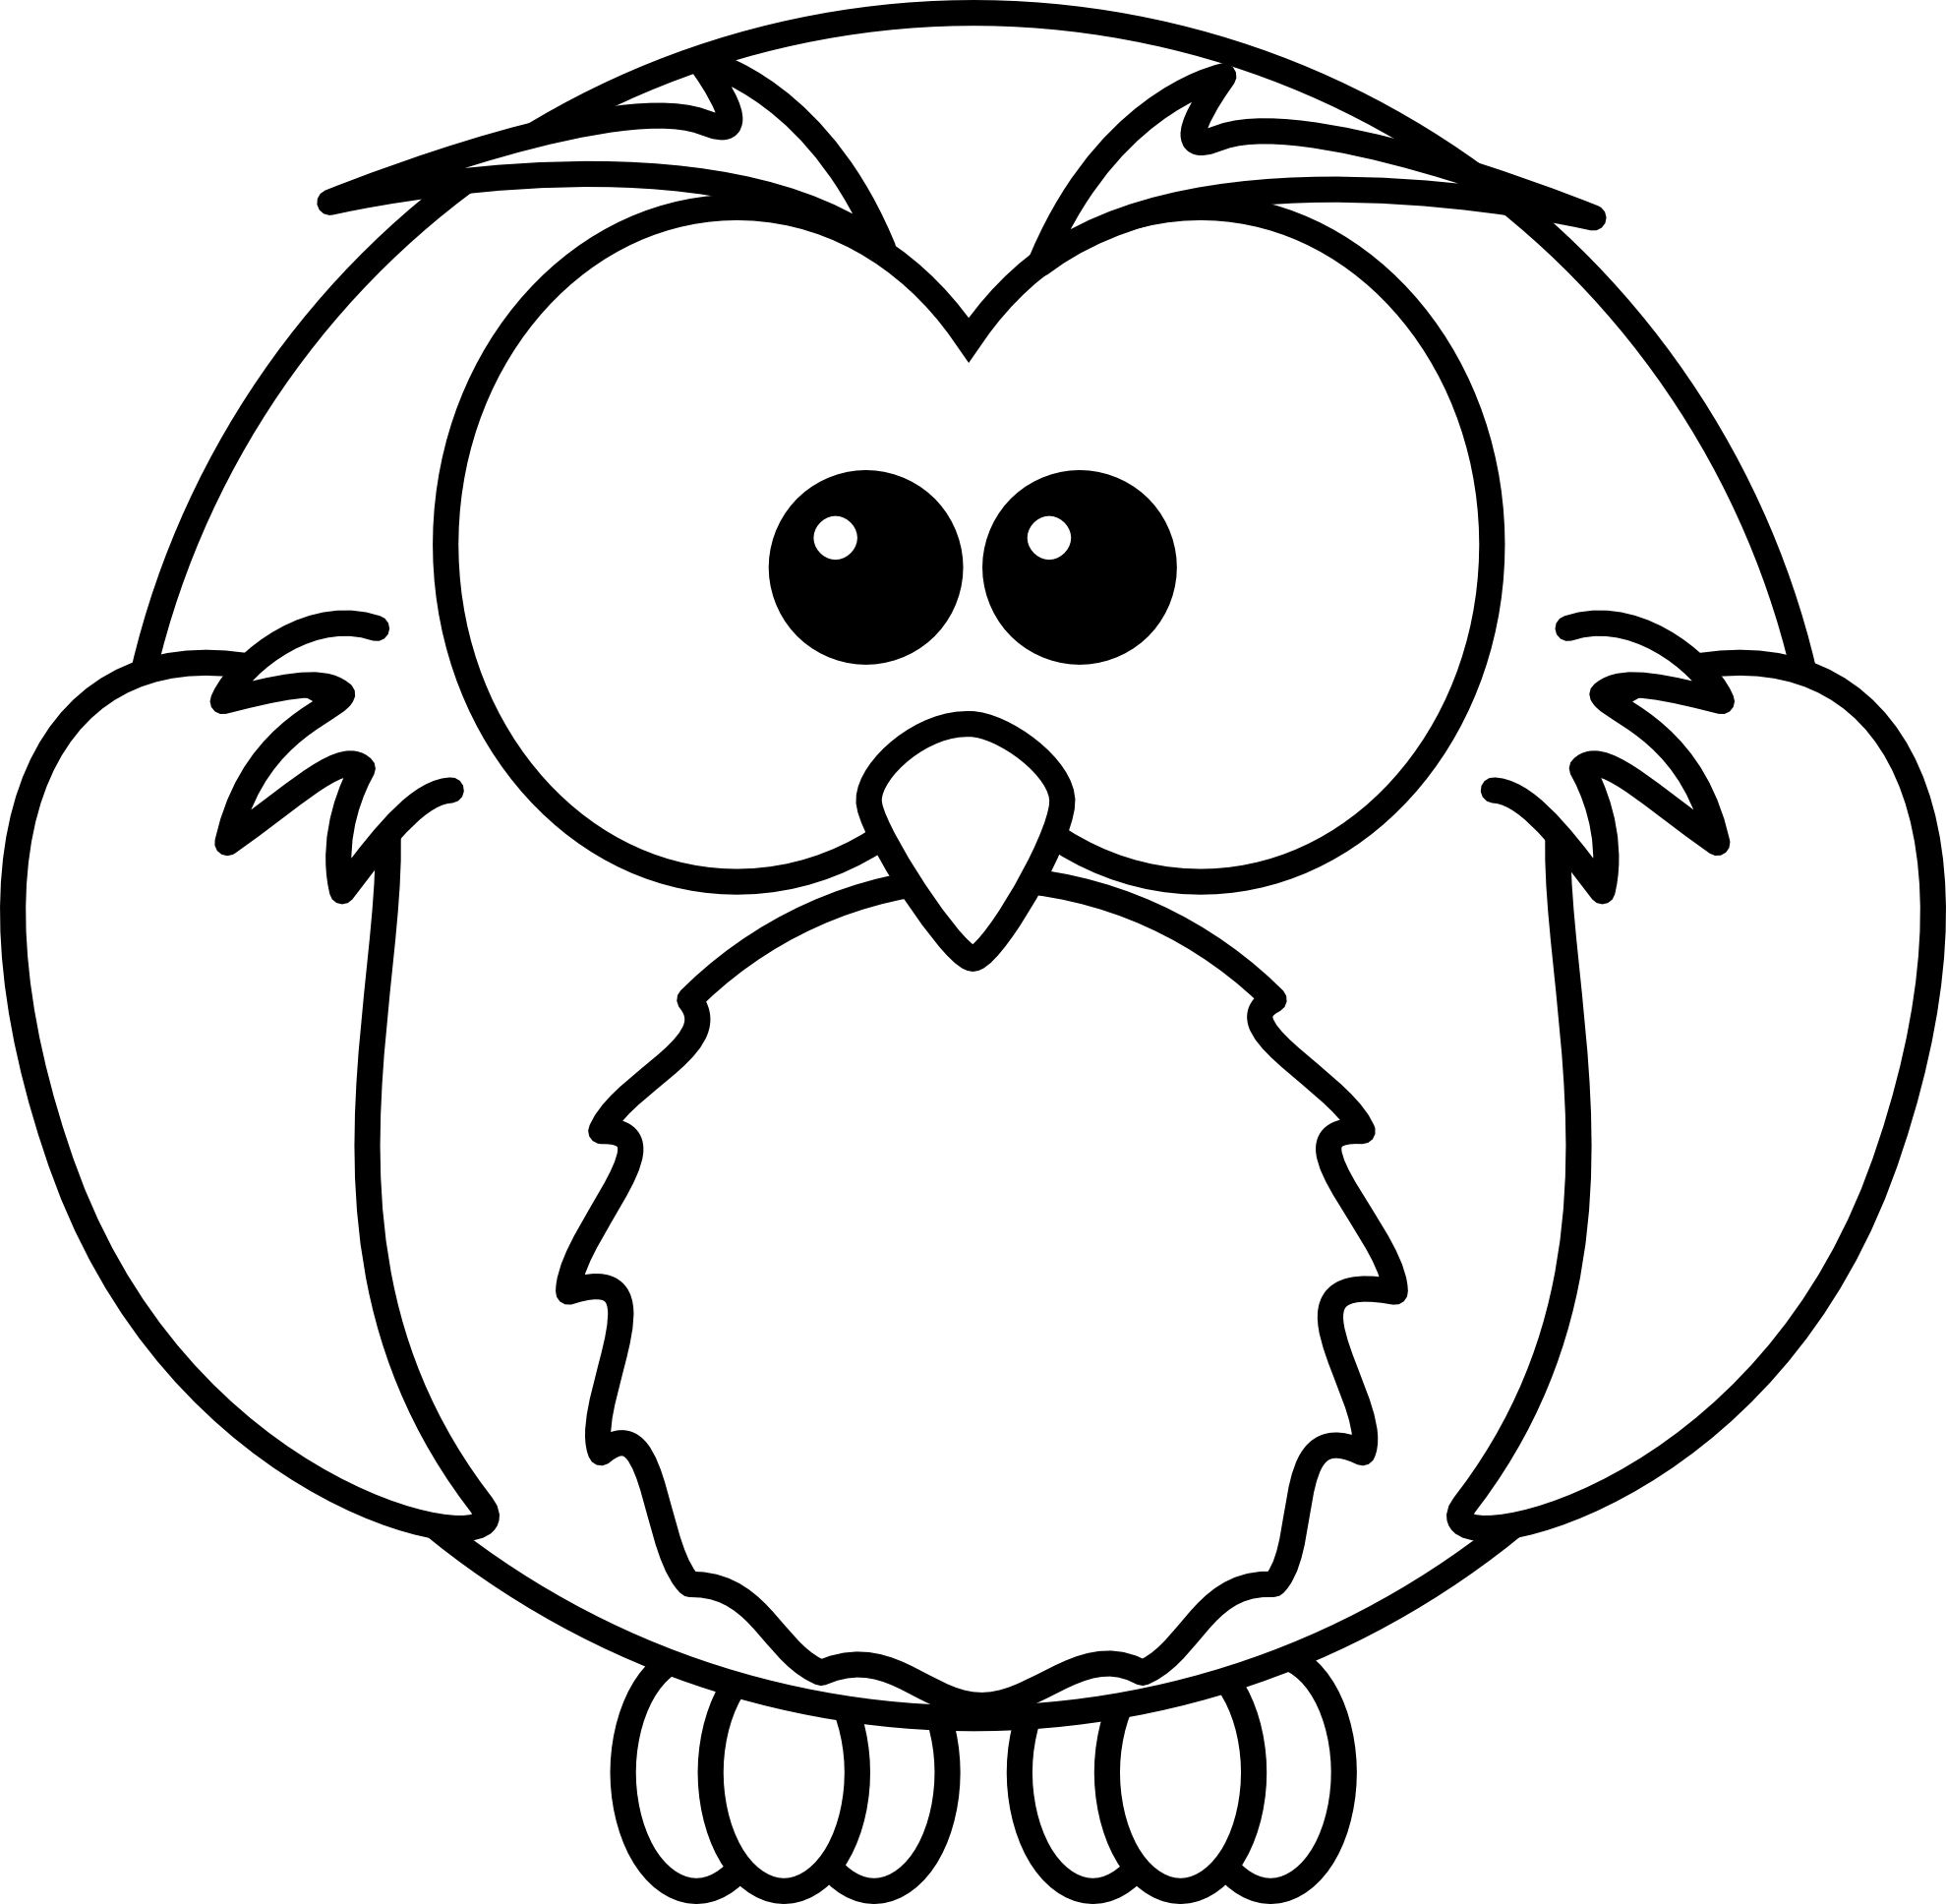 owl clipart black and white clipart panda free clipart images rh clipartpanda com black and white clipart owl owl pictures black and white clipart